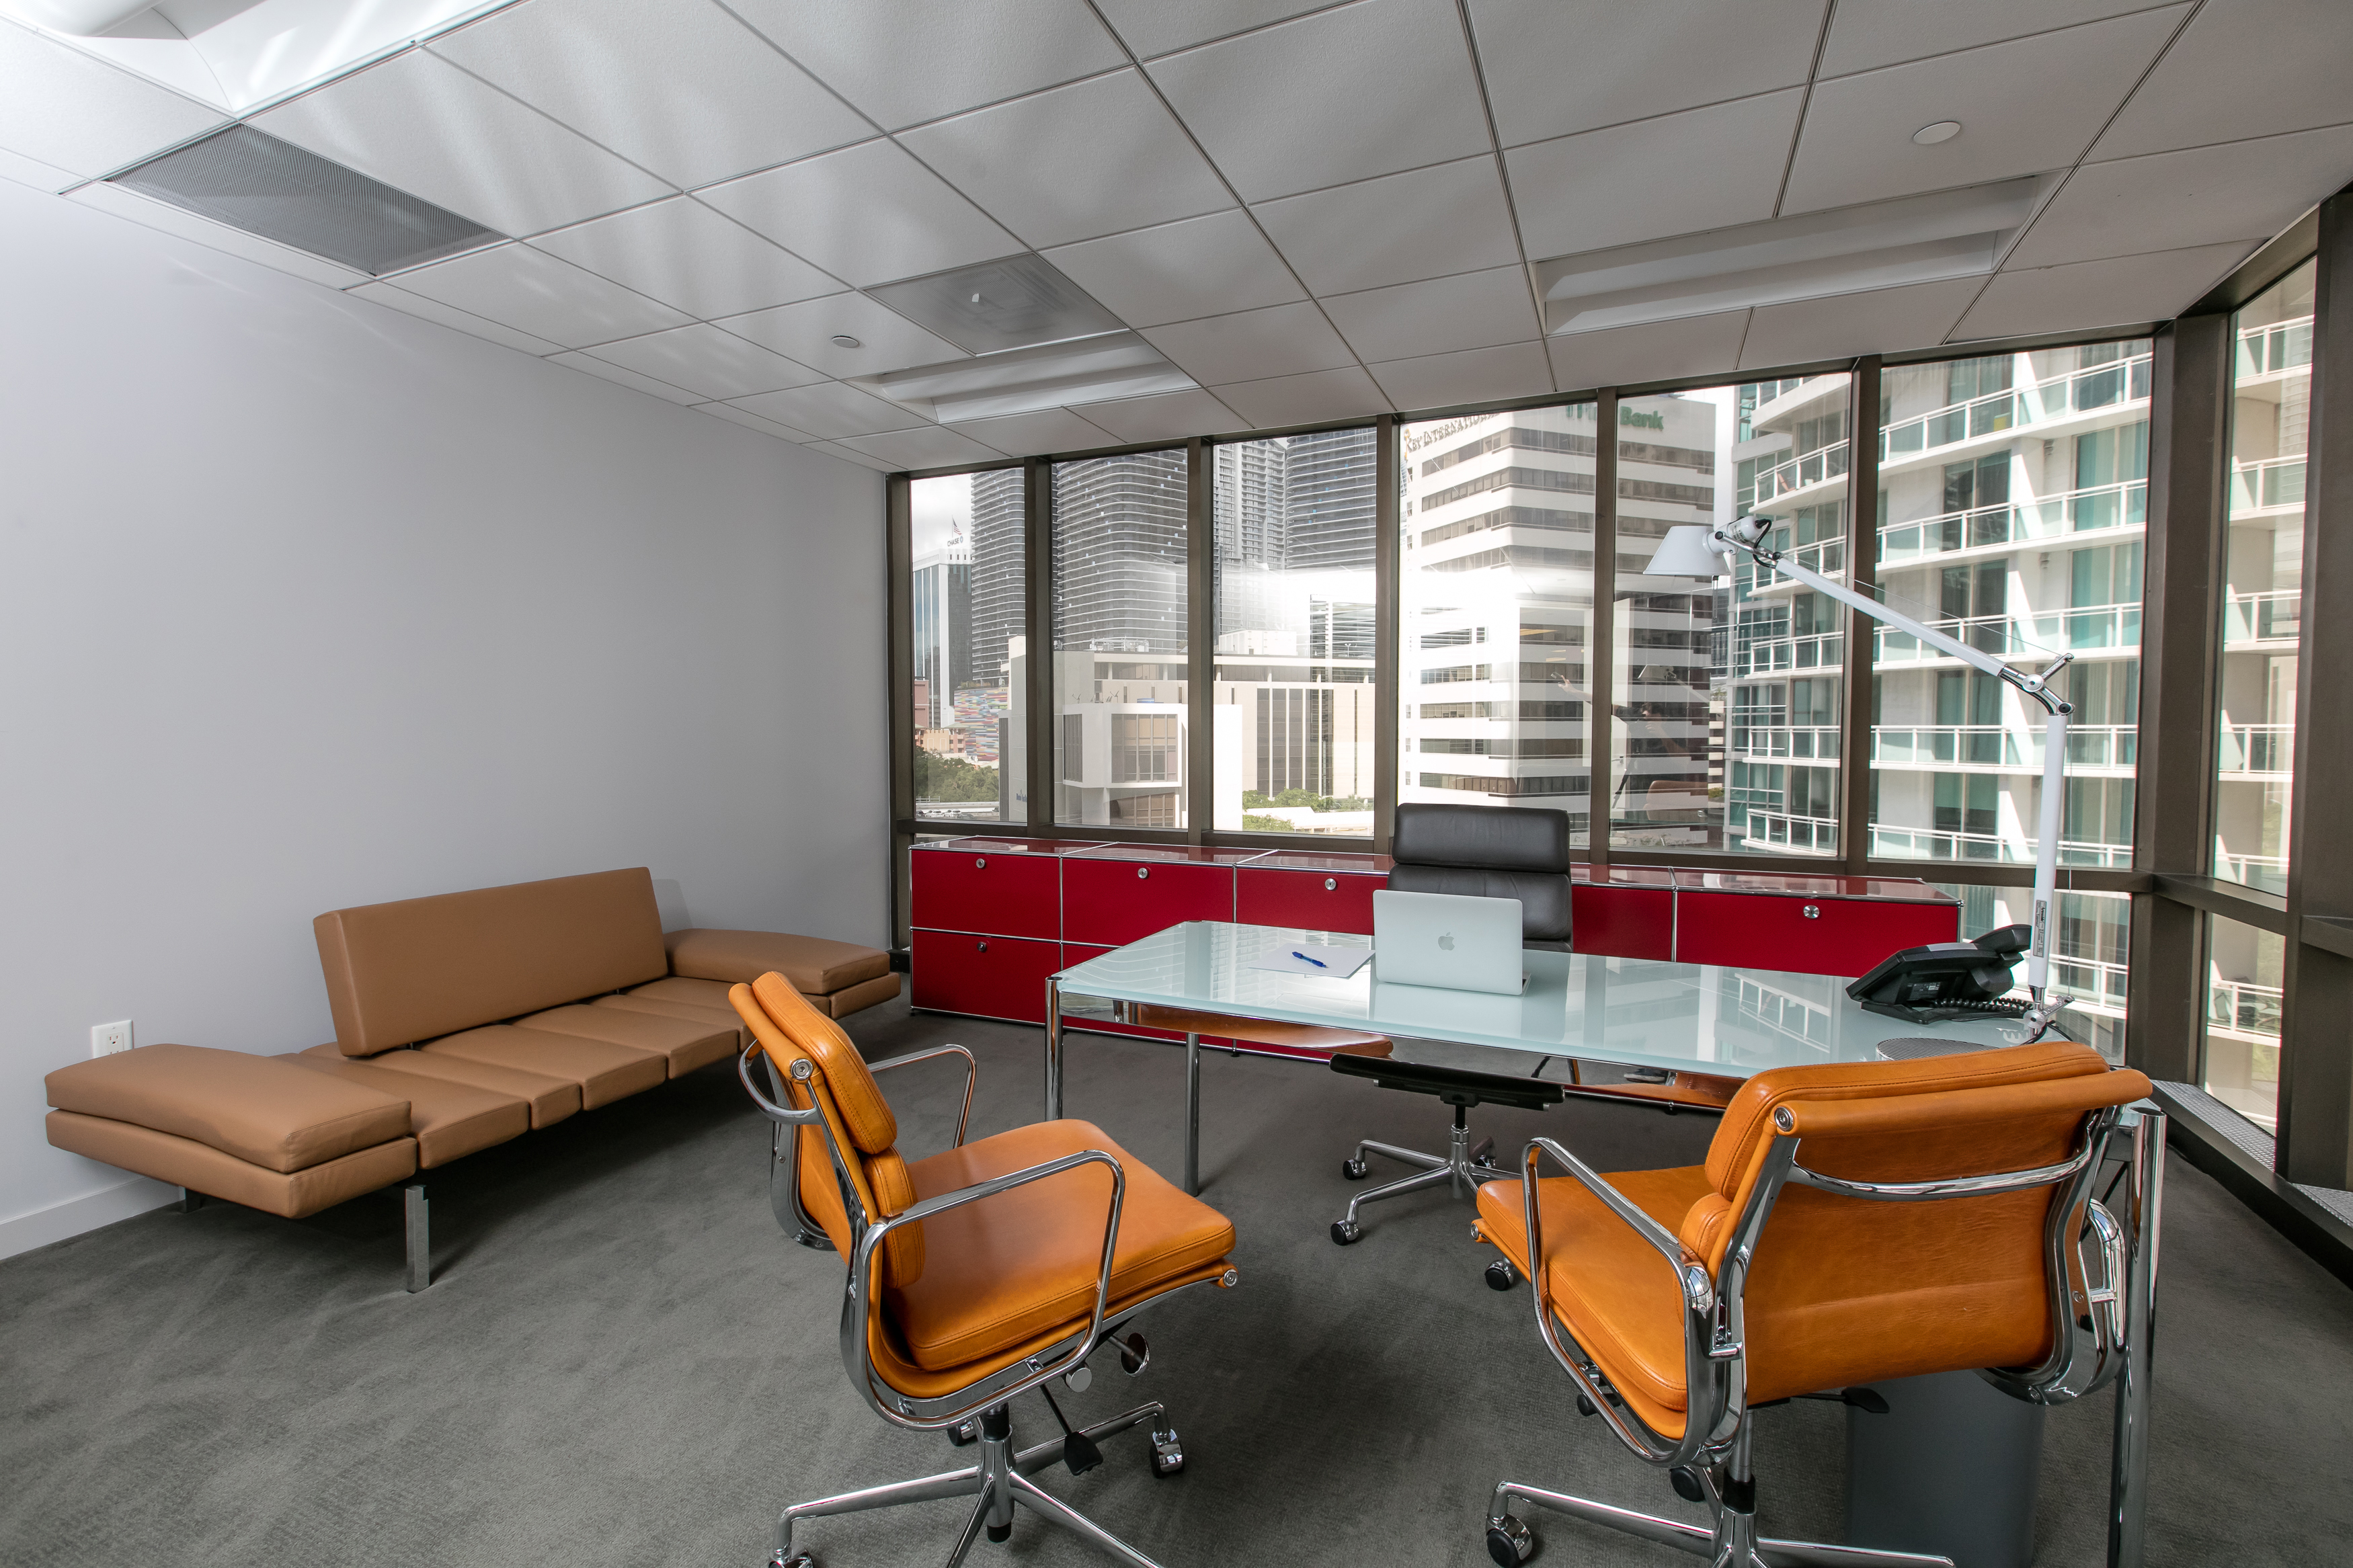 Lawspacematch blog: modern lawspace available for lease in miami